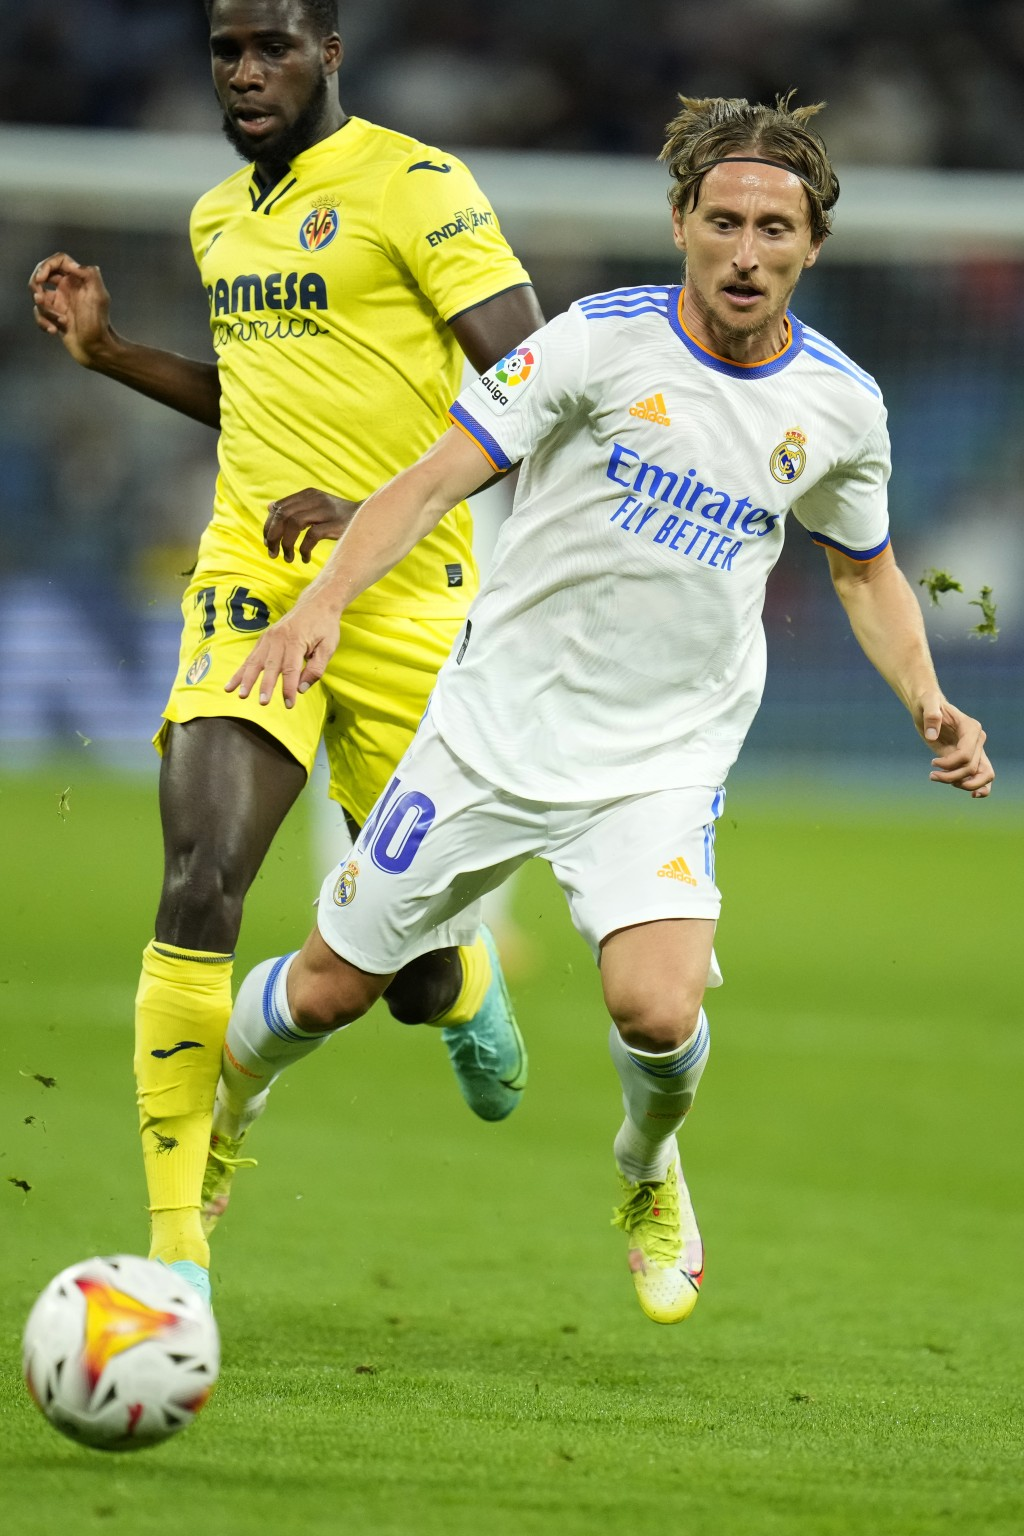 Real Madrid's Luka Modric falls as he is challenged by Villarreal's Boulaye Dia during a Spanish La Liga soccer match between Real Madrid and Villarre...